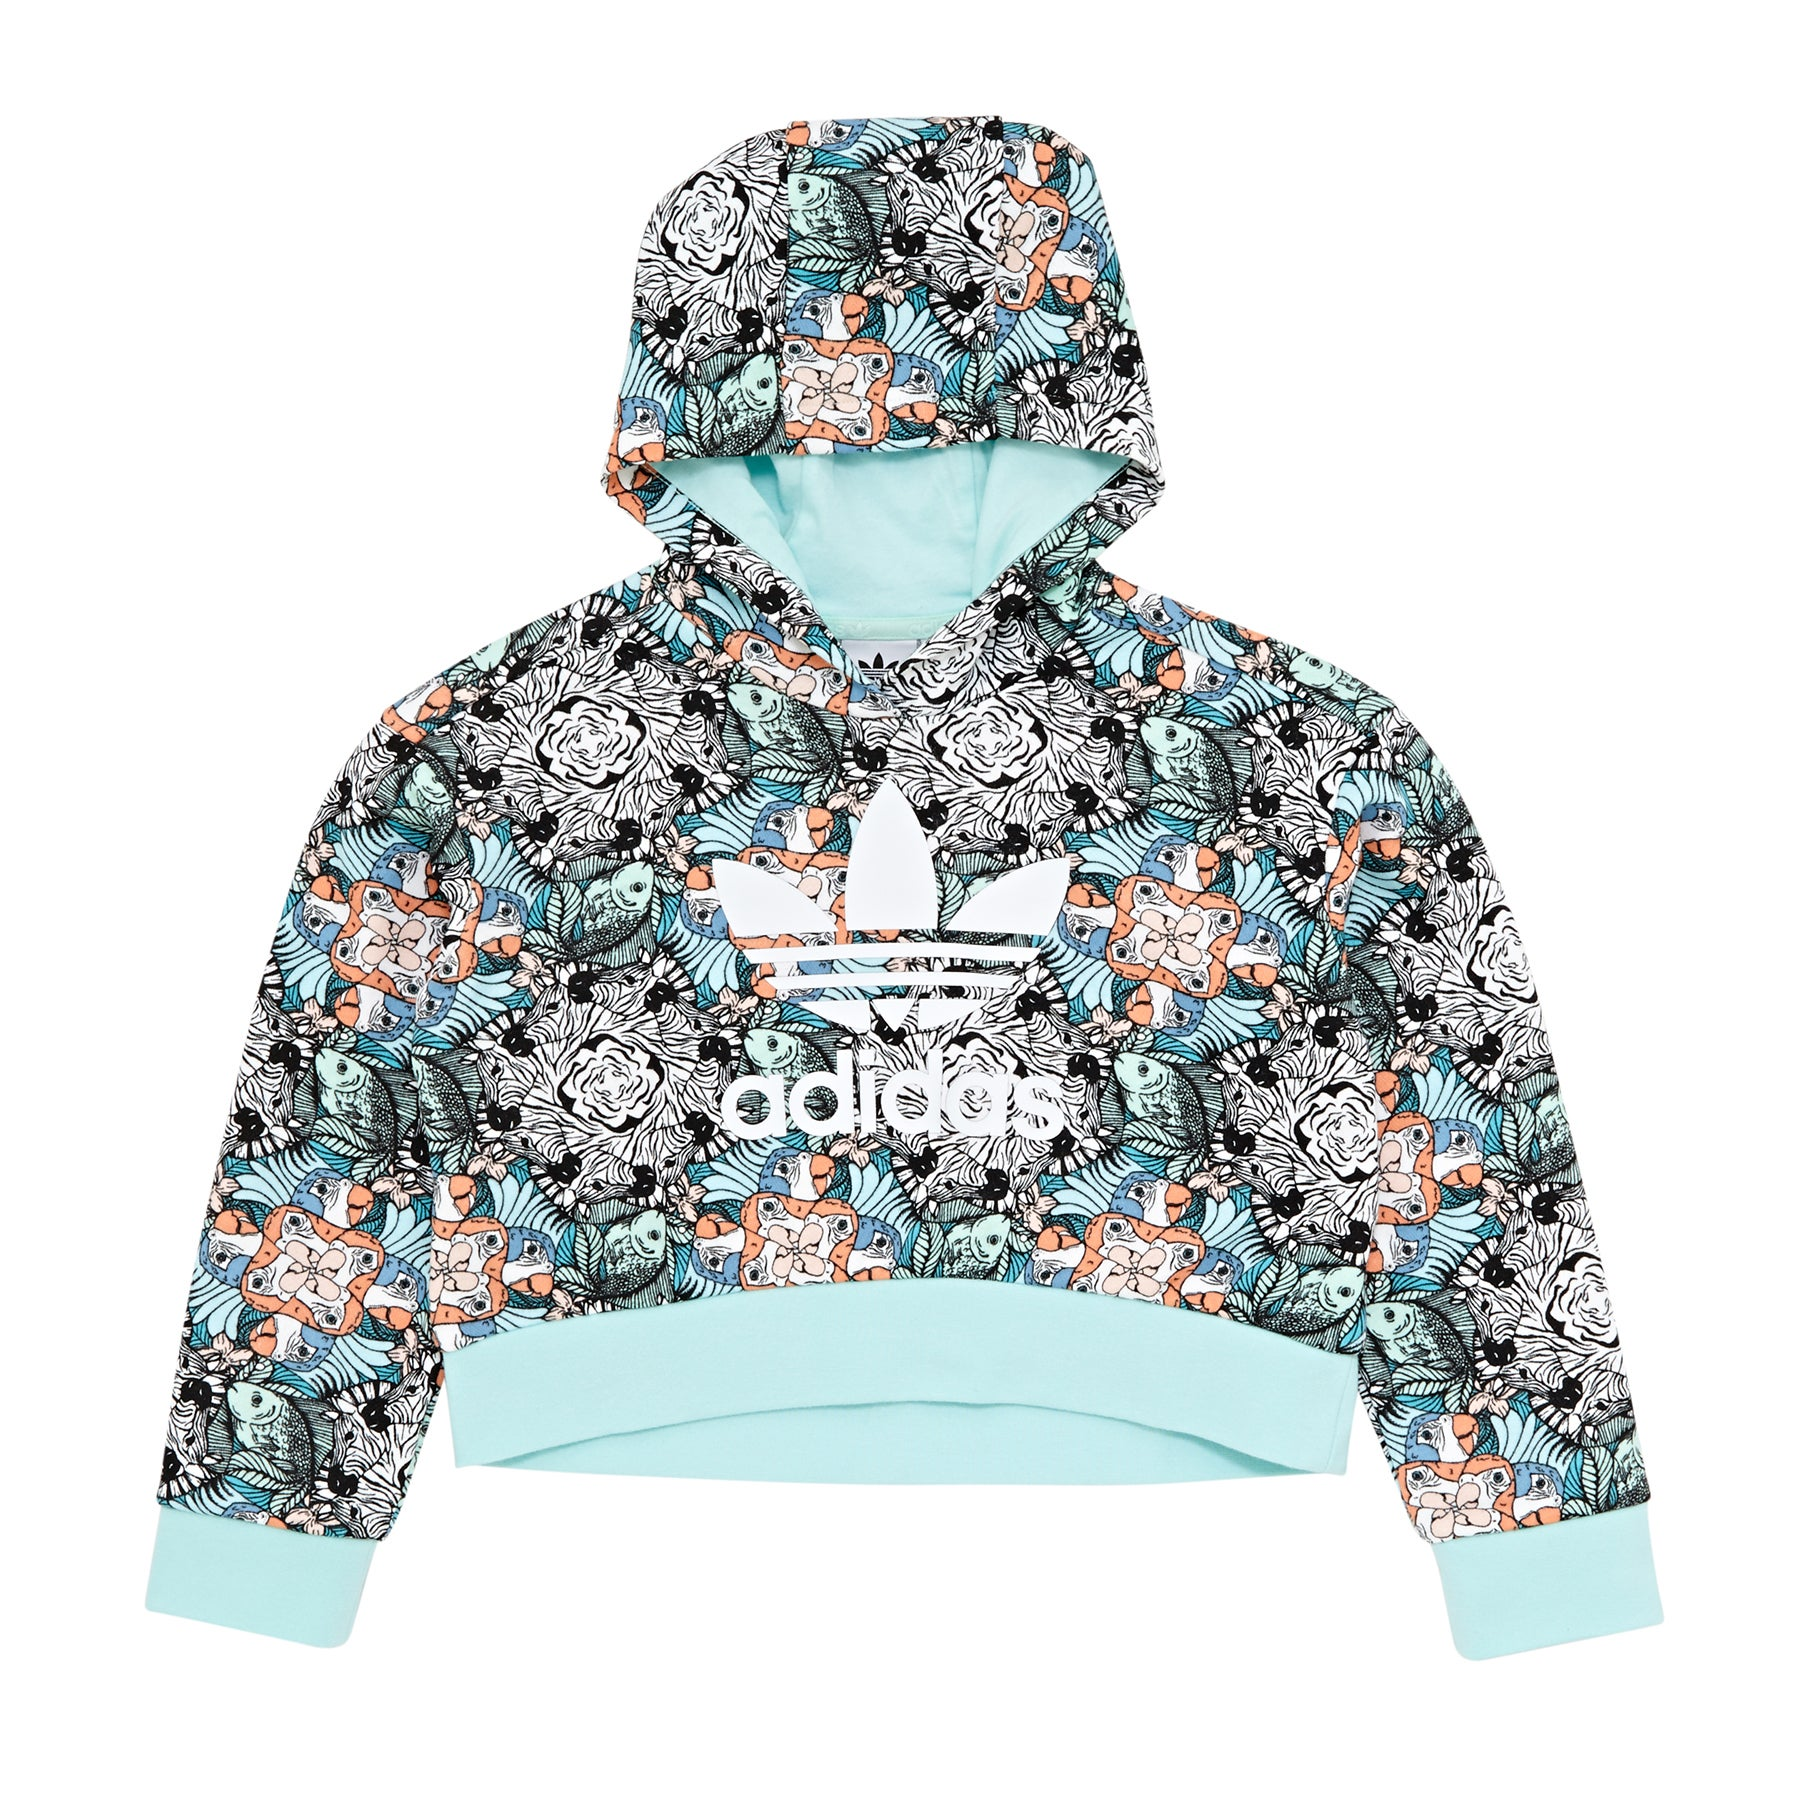 Adidas Originals Zoo Kids Pullover Hoody - Multco/clemin/white